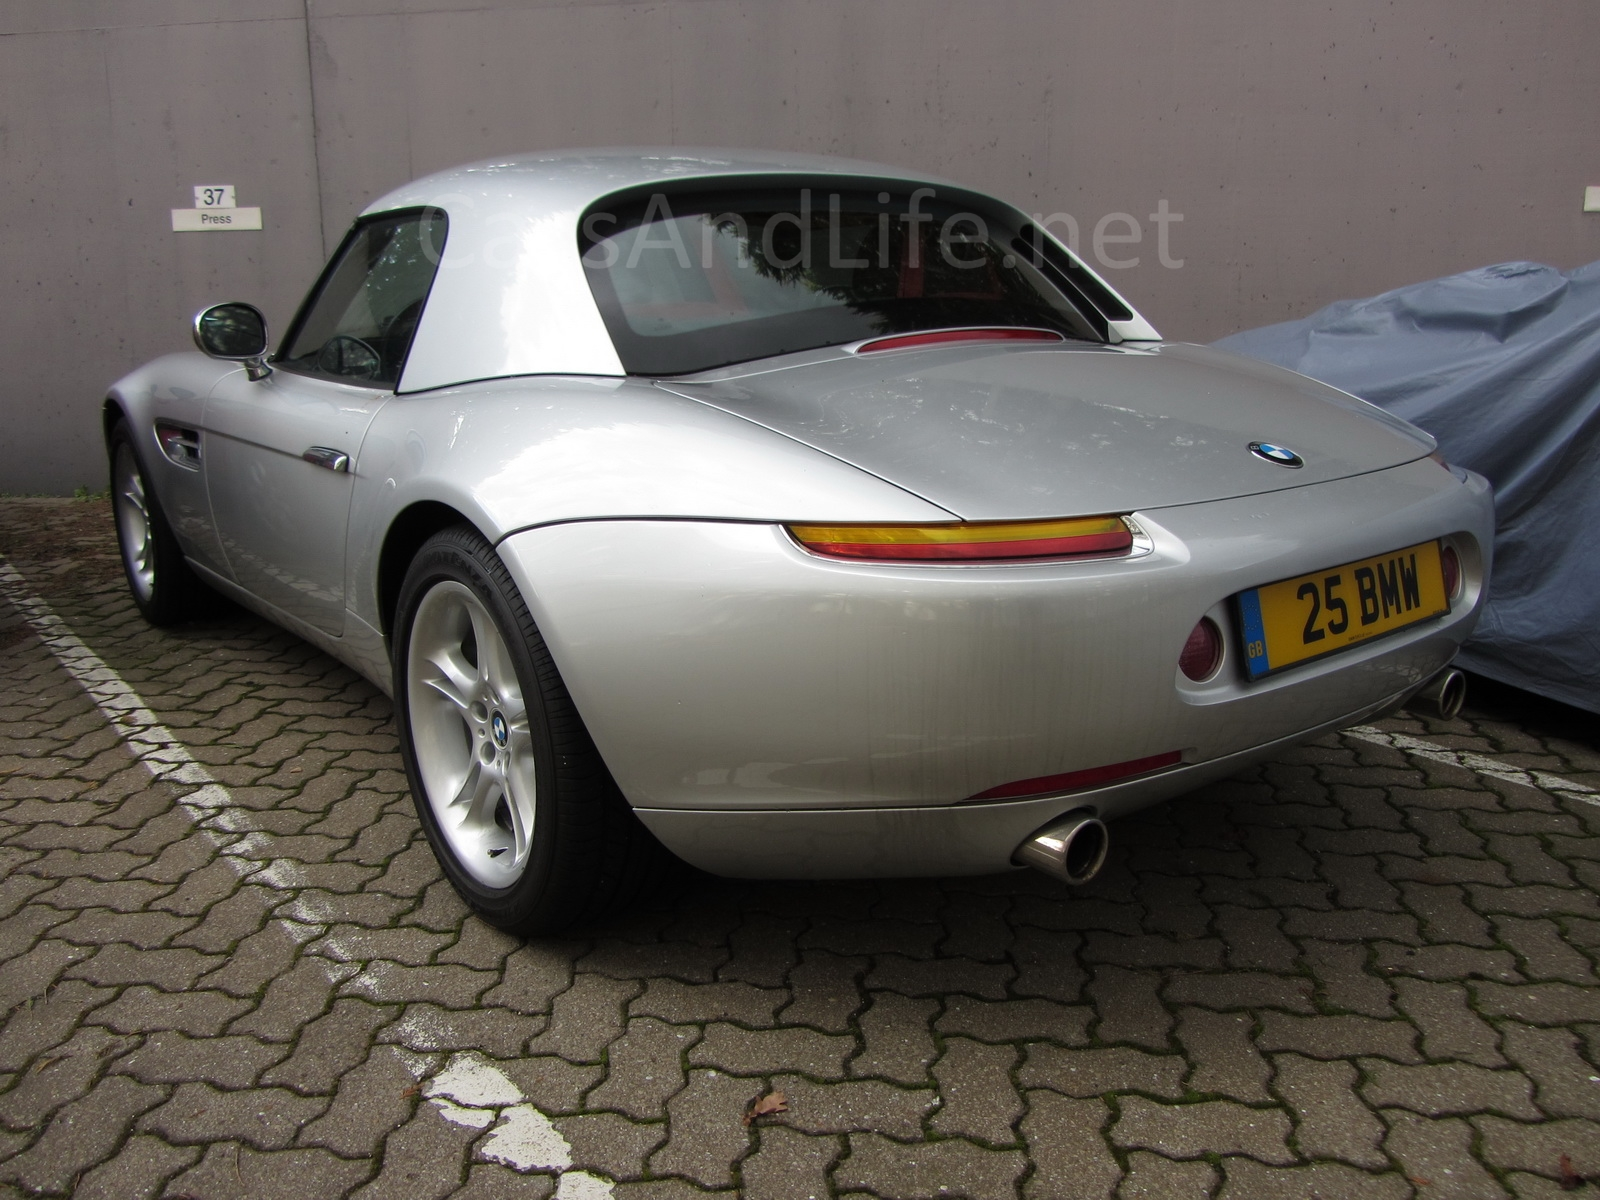 Whatwasthatcar Wwtcar Com James Bond S Car Bmw Z8